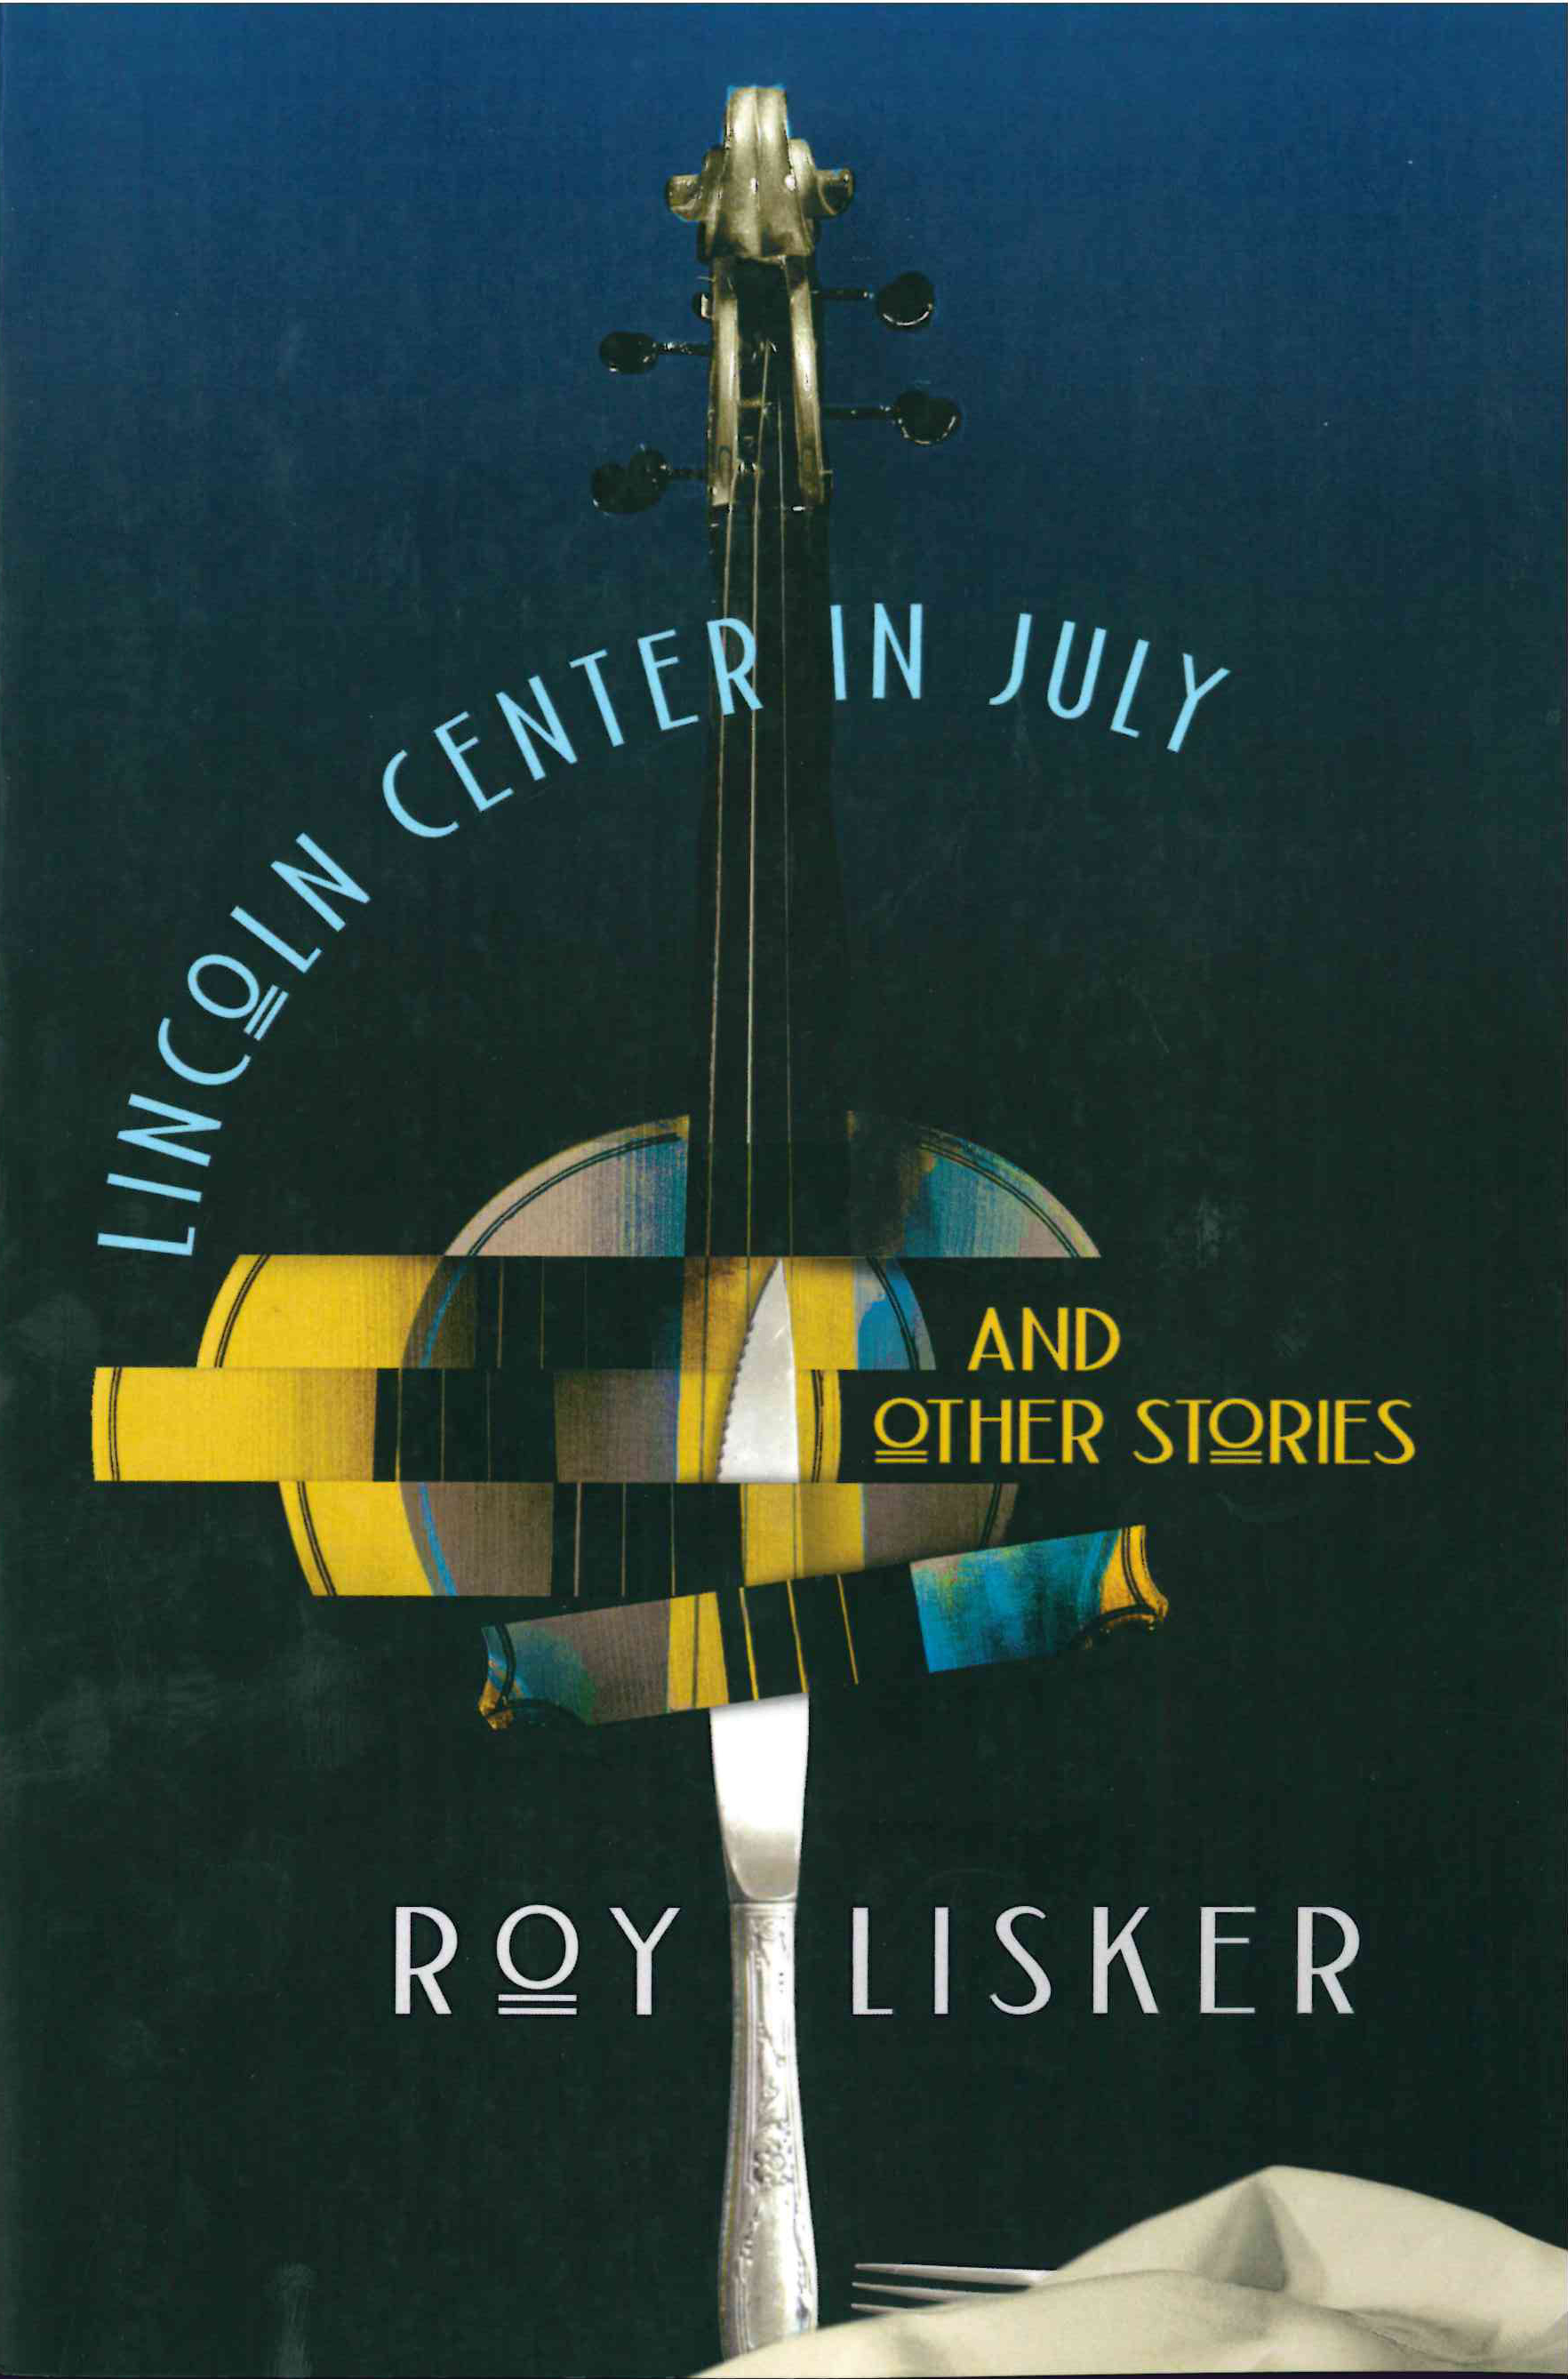 Lincoln Center in July and Other Stories